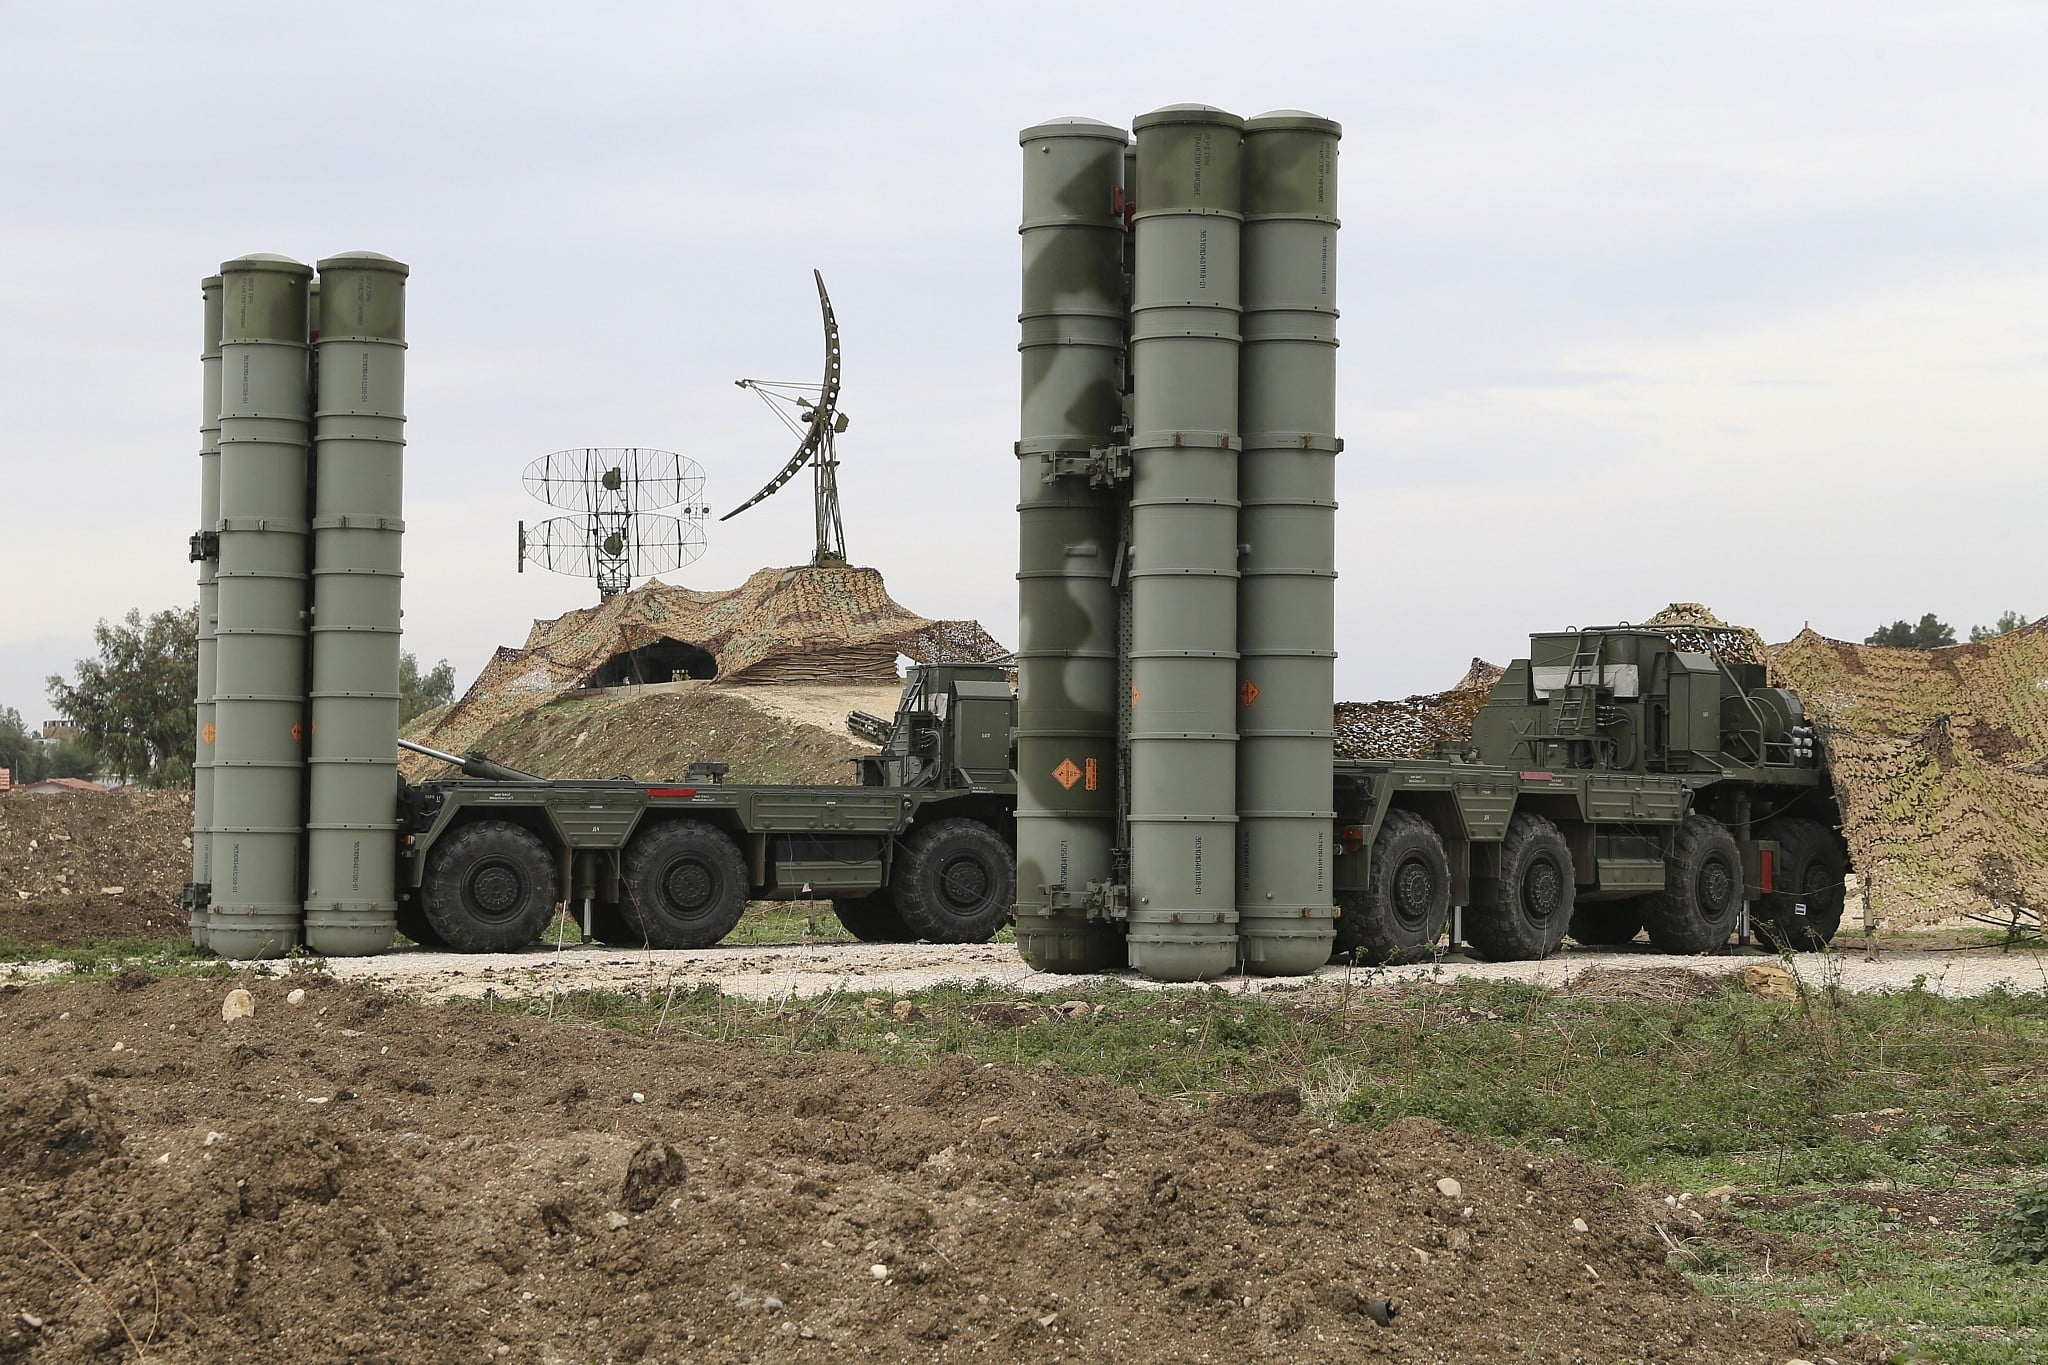 Turkey urges U.S. not to harm relations over S-400 missiles 14